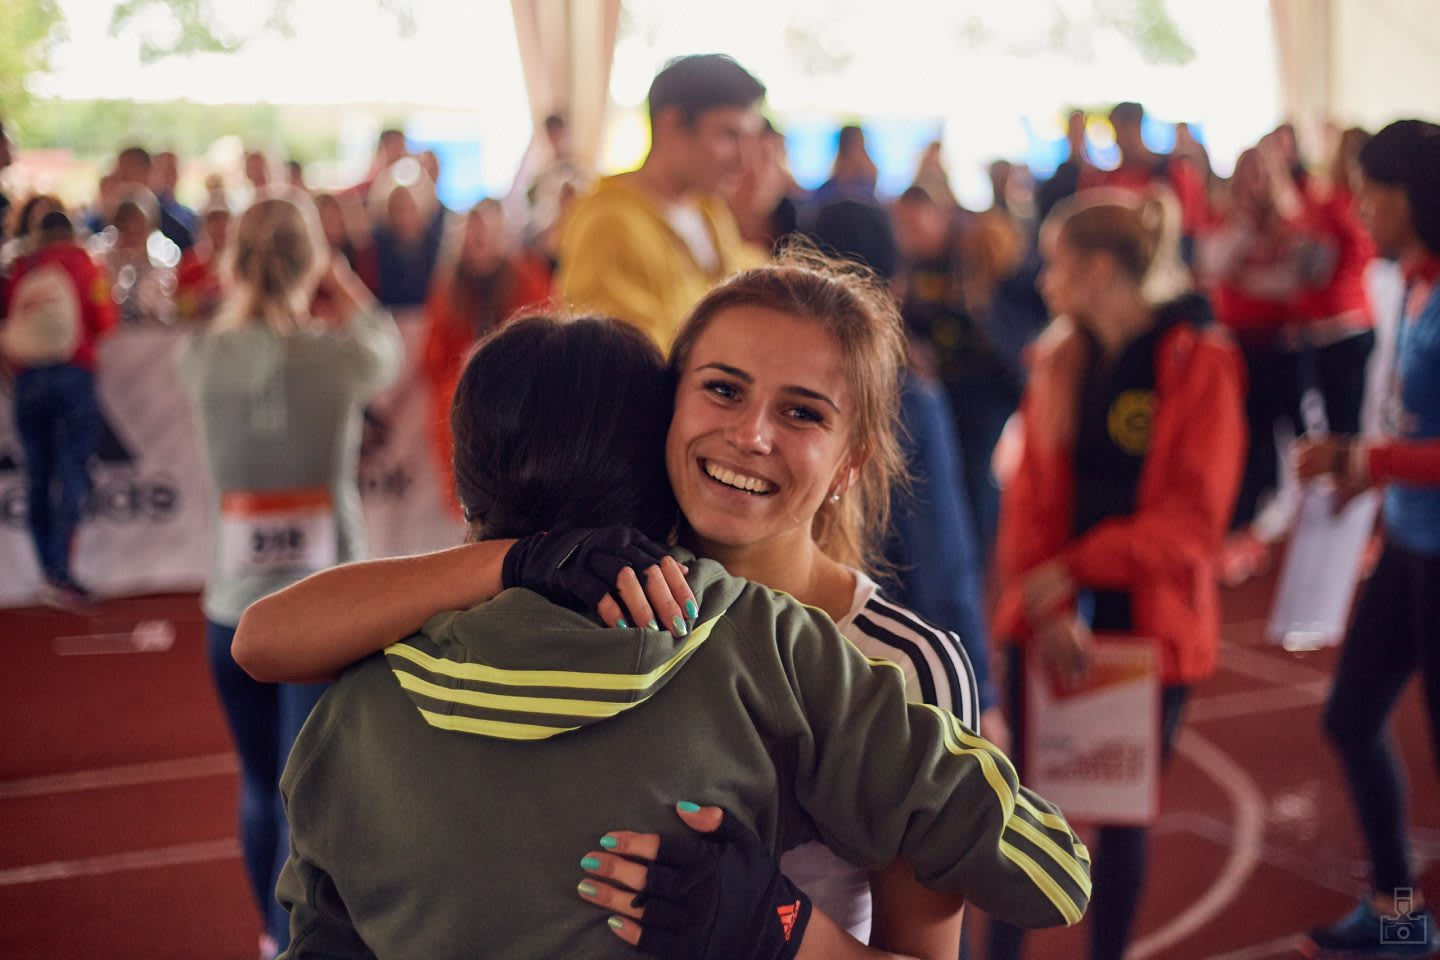 A smiling woman in sports gear is hugging another woman on a track field. Motivation; Passion; Competition; Adidas; Reebok; GamePlan A